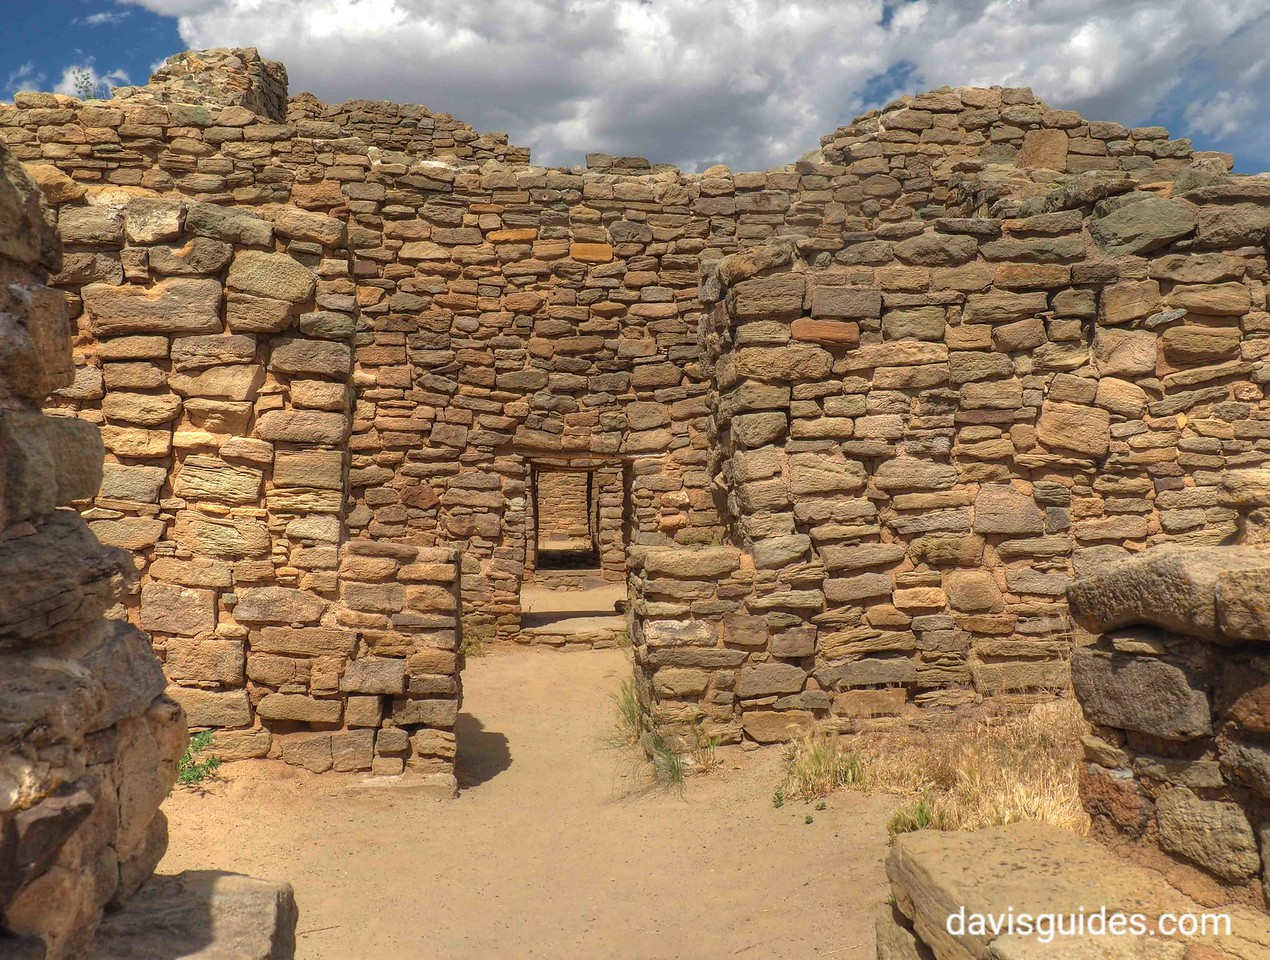 Centuries old structures at Aztec Ruins National Monument, Arizona